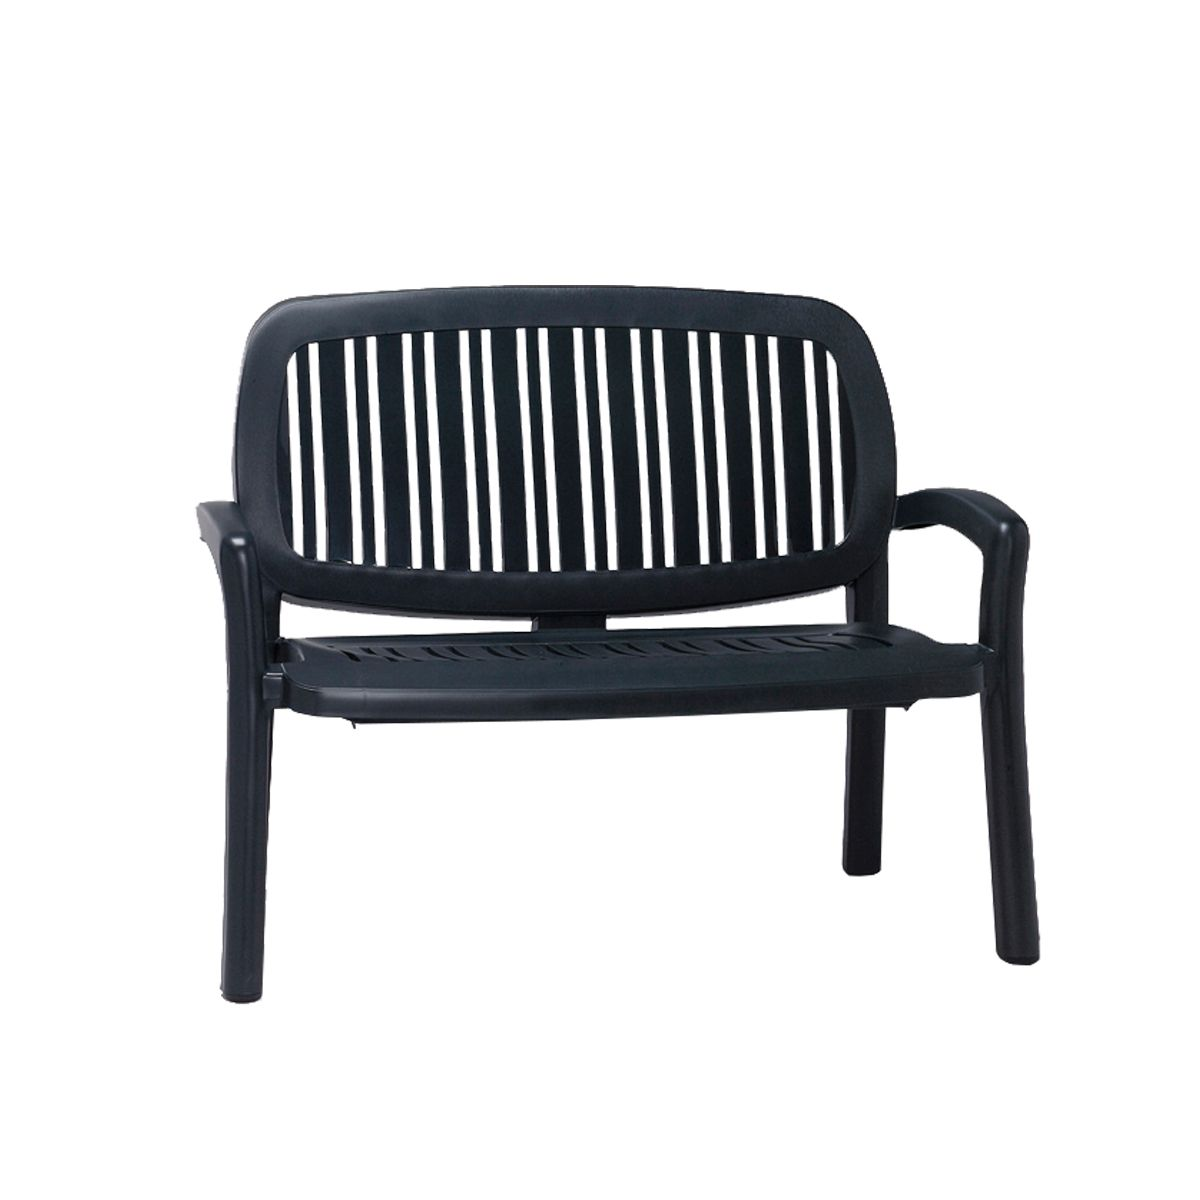 Banc 2 places empilable design nardi lipari zendart design - Banc de jardin 2 places ...